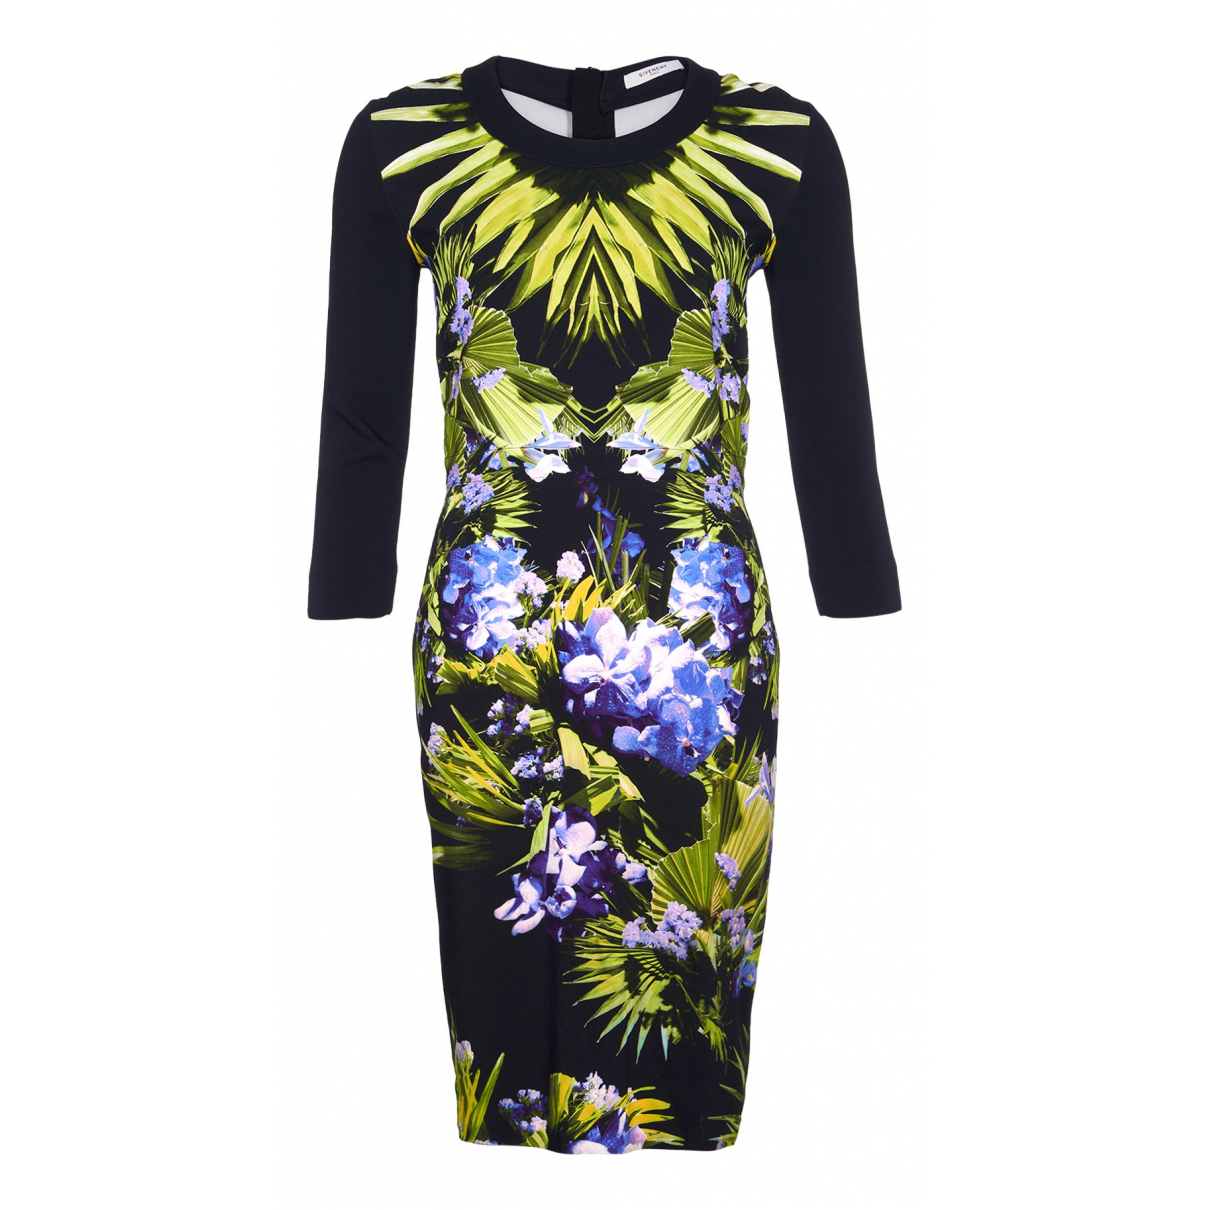 Givenchy \N Kleid in  Bunt Polyester